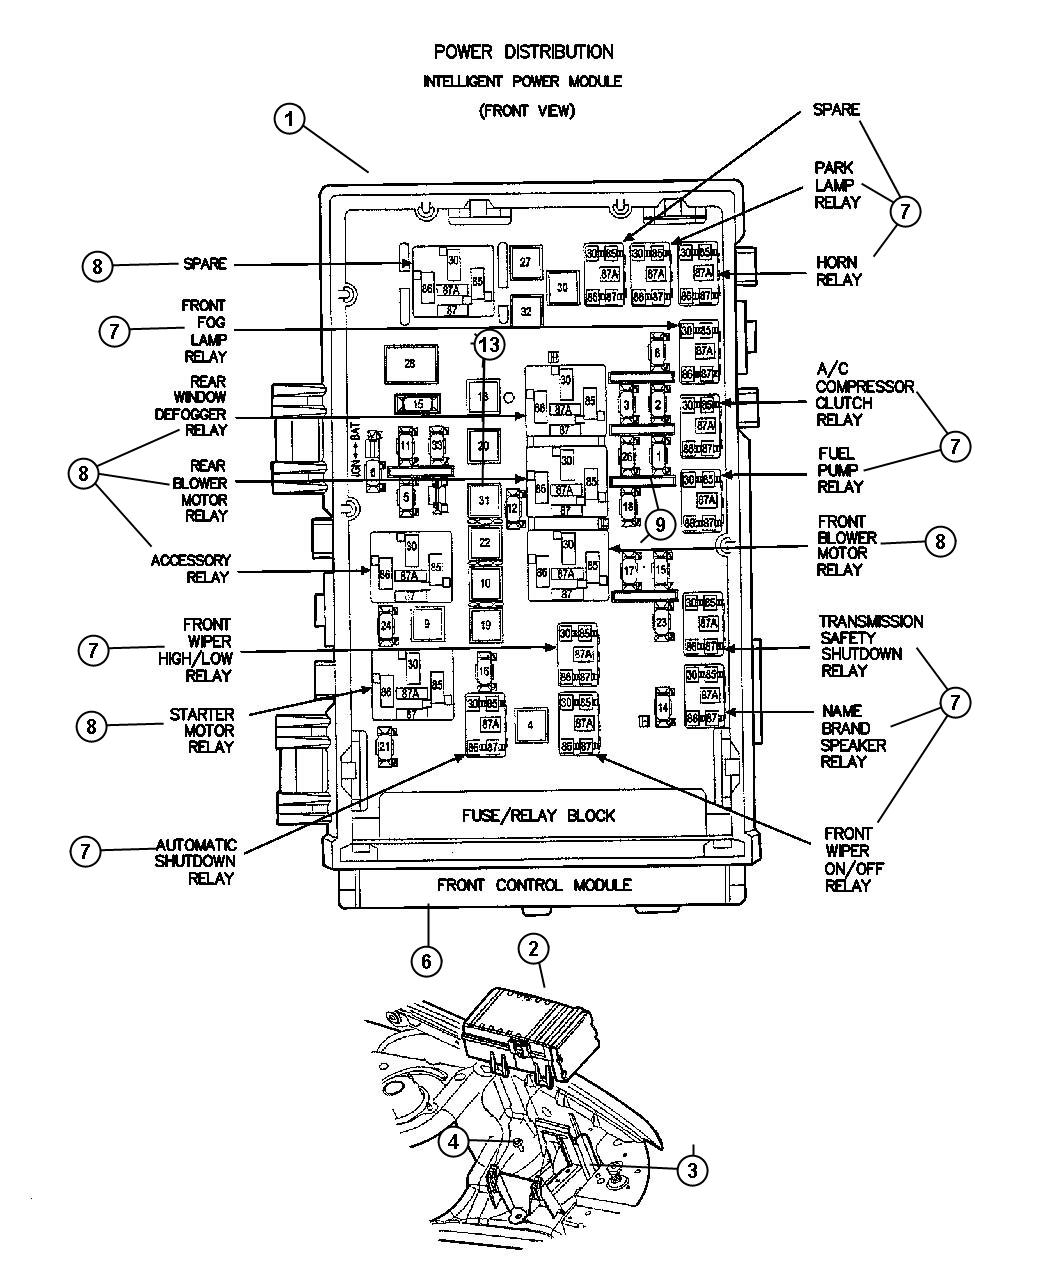 05102969ab - mopar power distribution center. infinityfog ... king dome rv satellite wiring diagrams rv refrigeration wiring diagrams #14